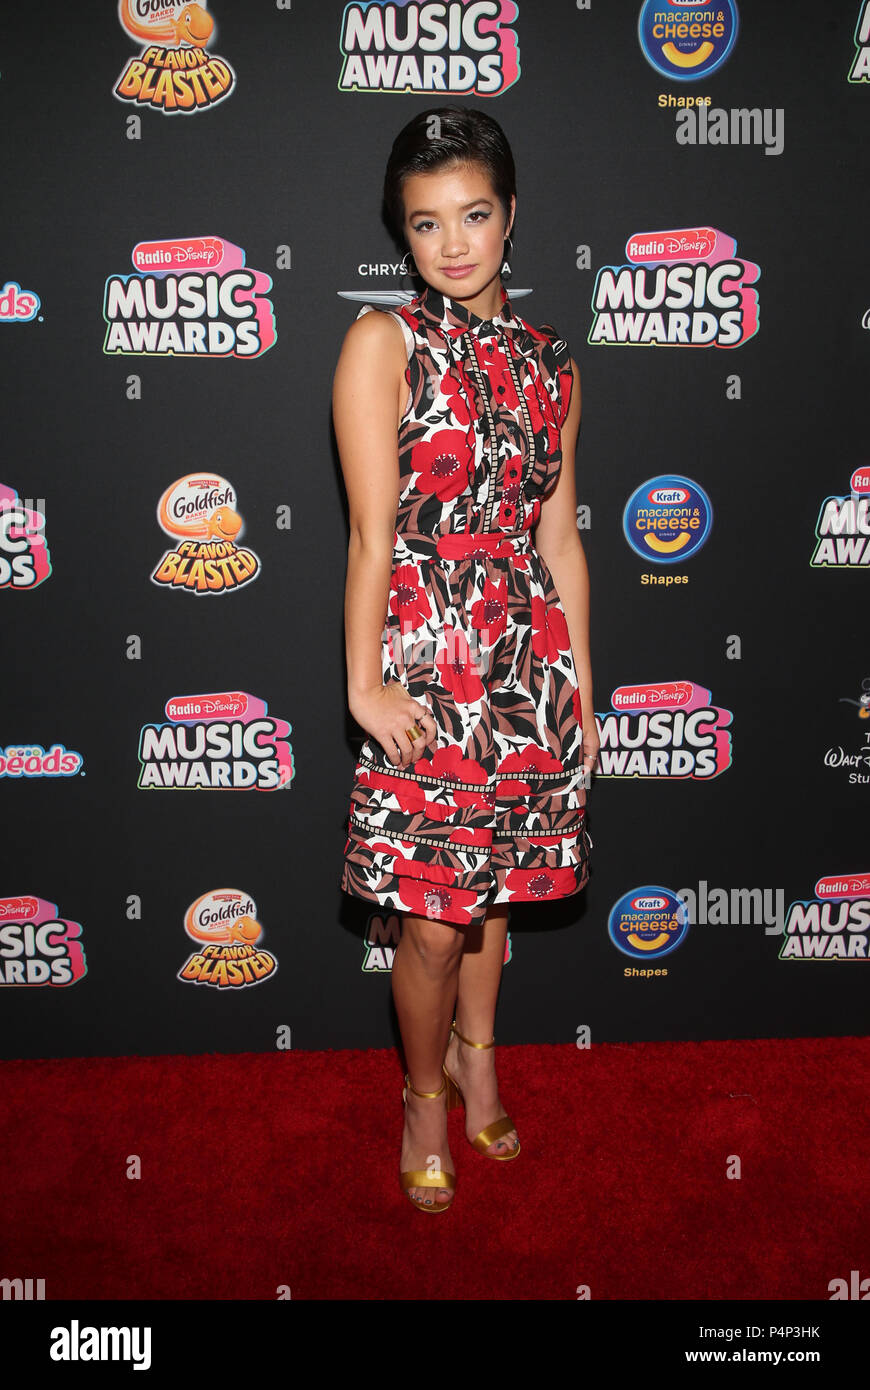 HOLLYWOOD, CA - JUNE 22: Peyton Elizabeth Lee, at the 2018 Radio Disney Music Awards at the Dolby Theatre in Hollywood, California on June 22, 2018. Credit: Faye Sadou/MediaPunch - Stock Image